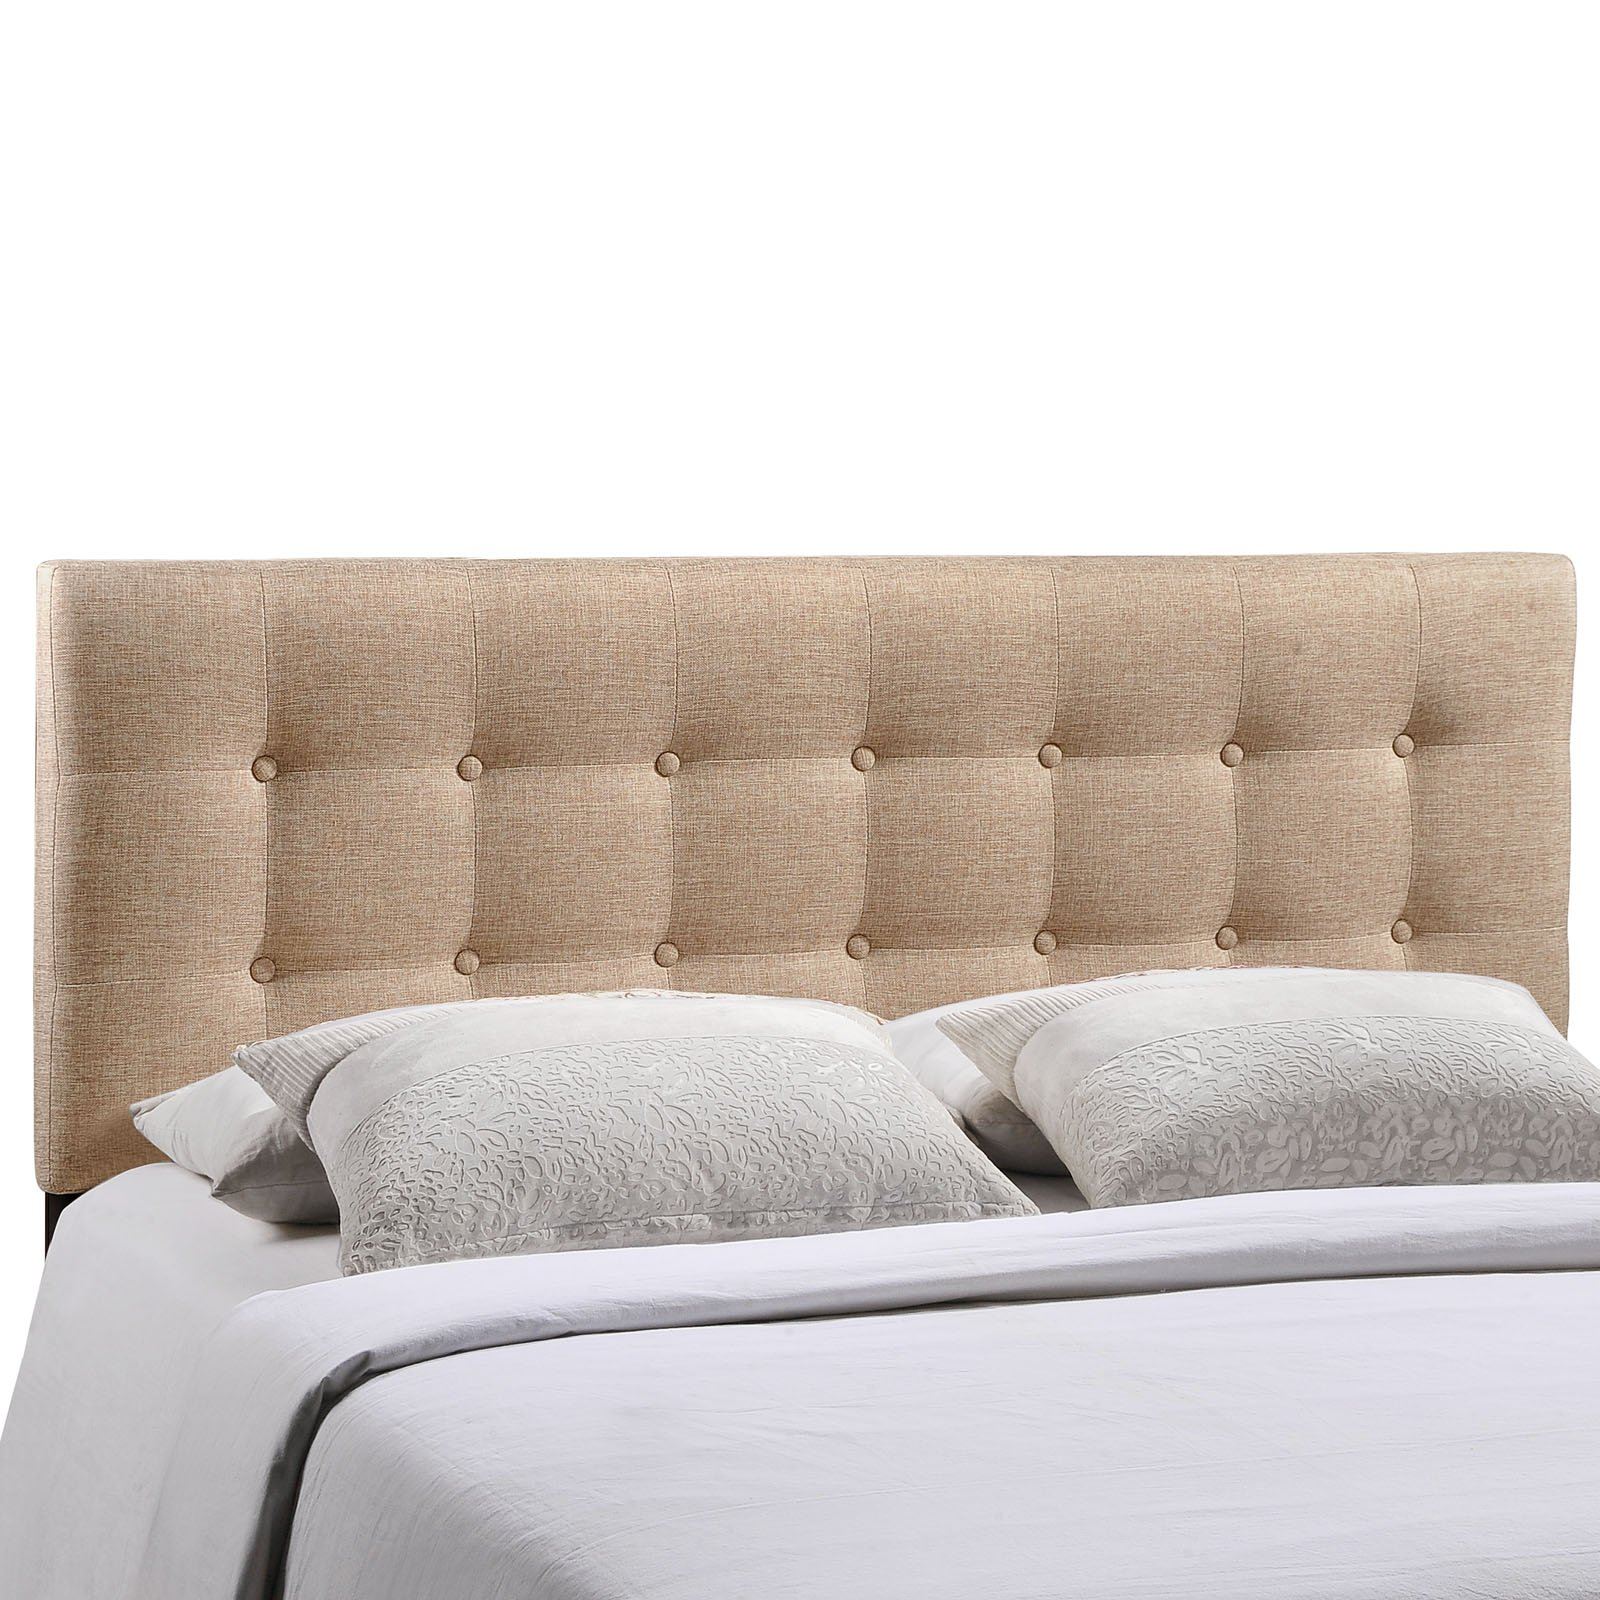 Modway Emily Upholstered Tufted Button Fabric Queen Size Headboard In Beige